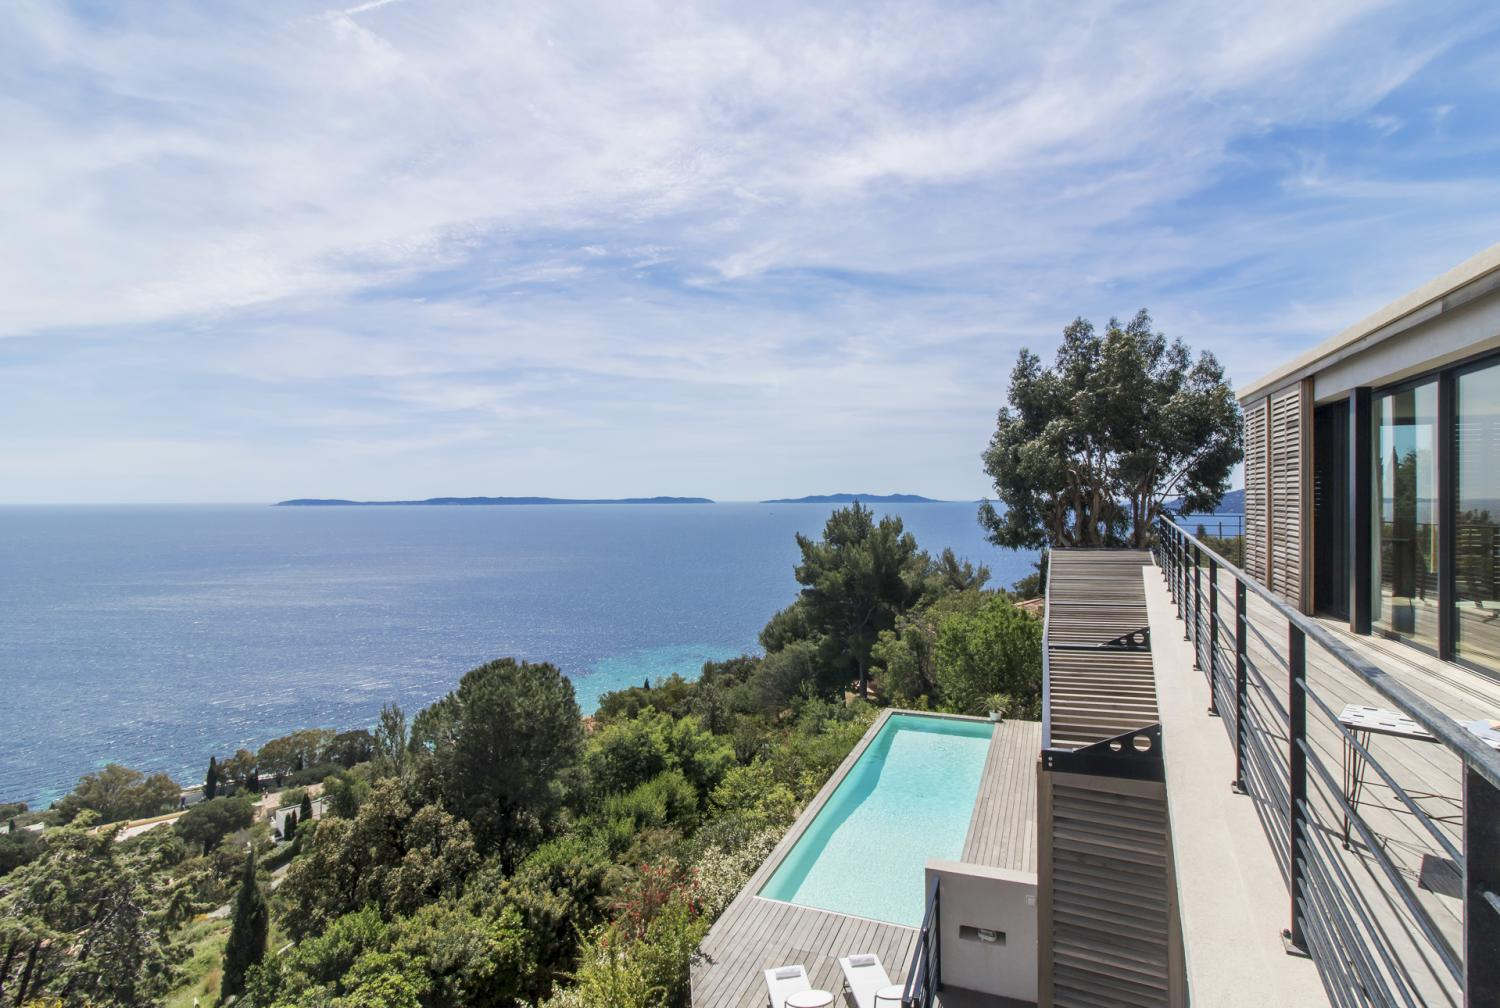 Balcony and outdoor pool with sea view, Aigue Marine, St Tropez Var, Cavaliere.